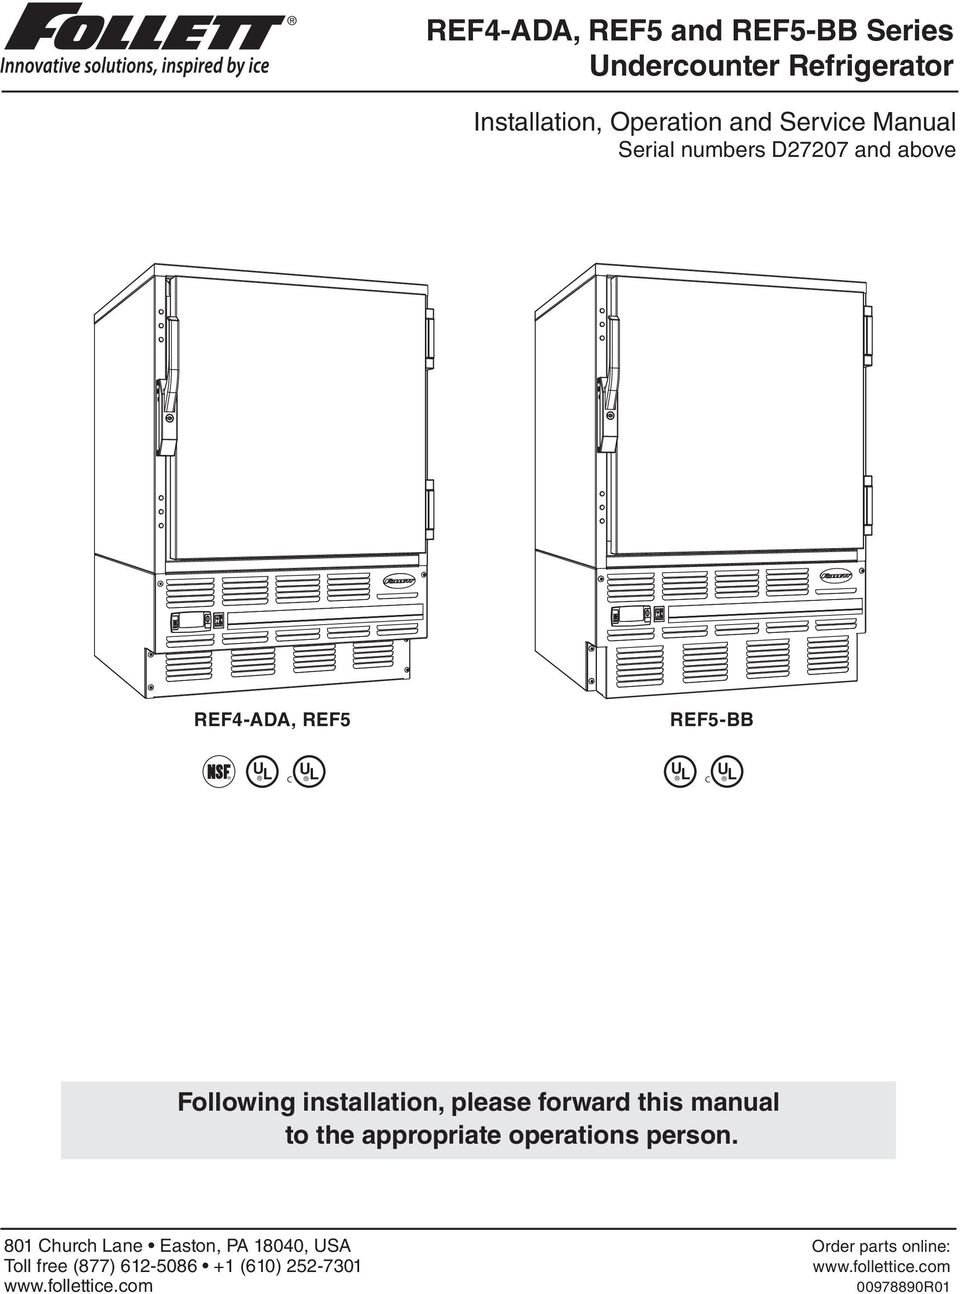 Ref4 Ada Ref5 And Bb Series Undercounter Refrigerator Pdf Master Bilt Wiring Diagram Refrigeration Installation Please Forward This Manual To The Appropriate Operations Person